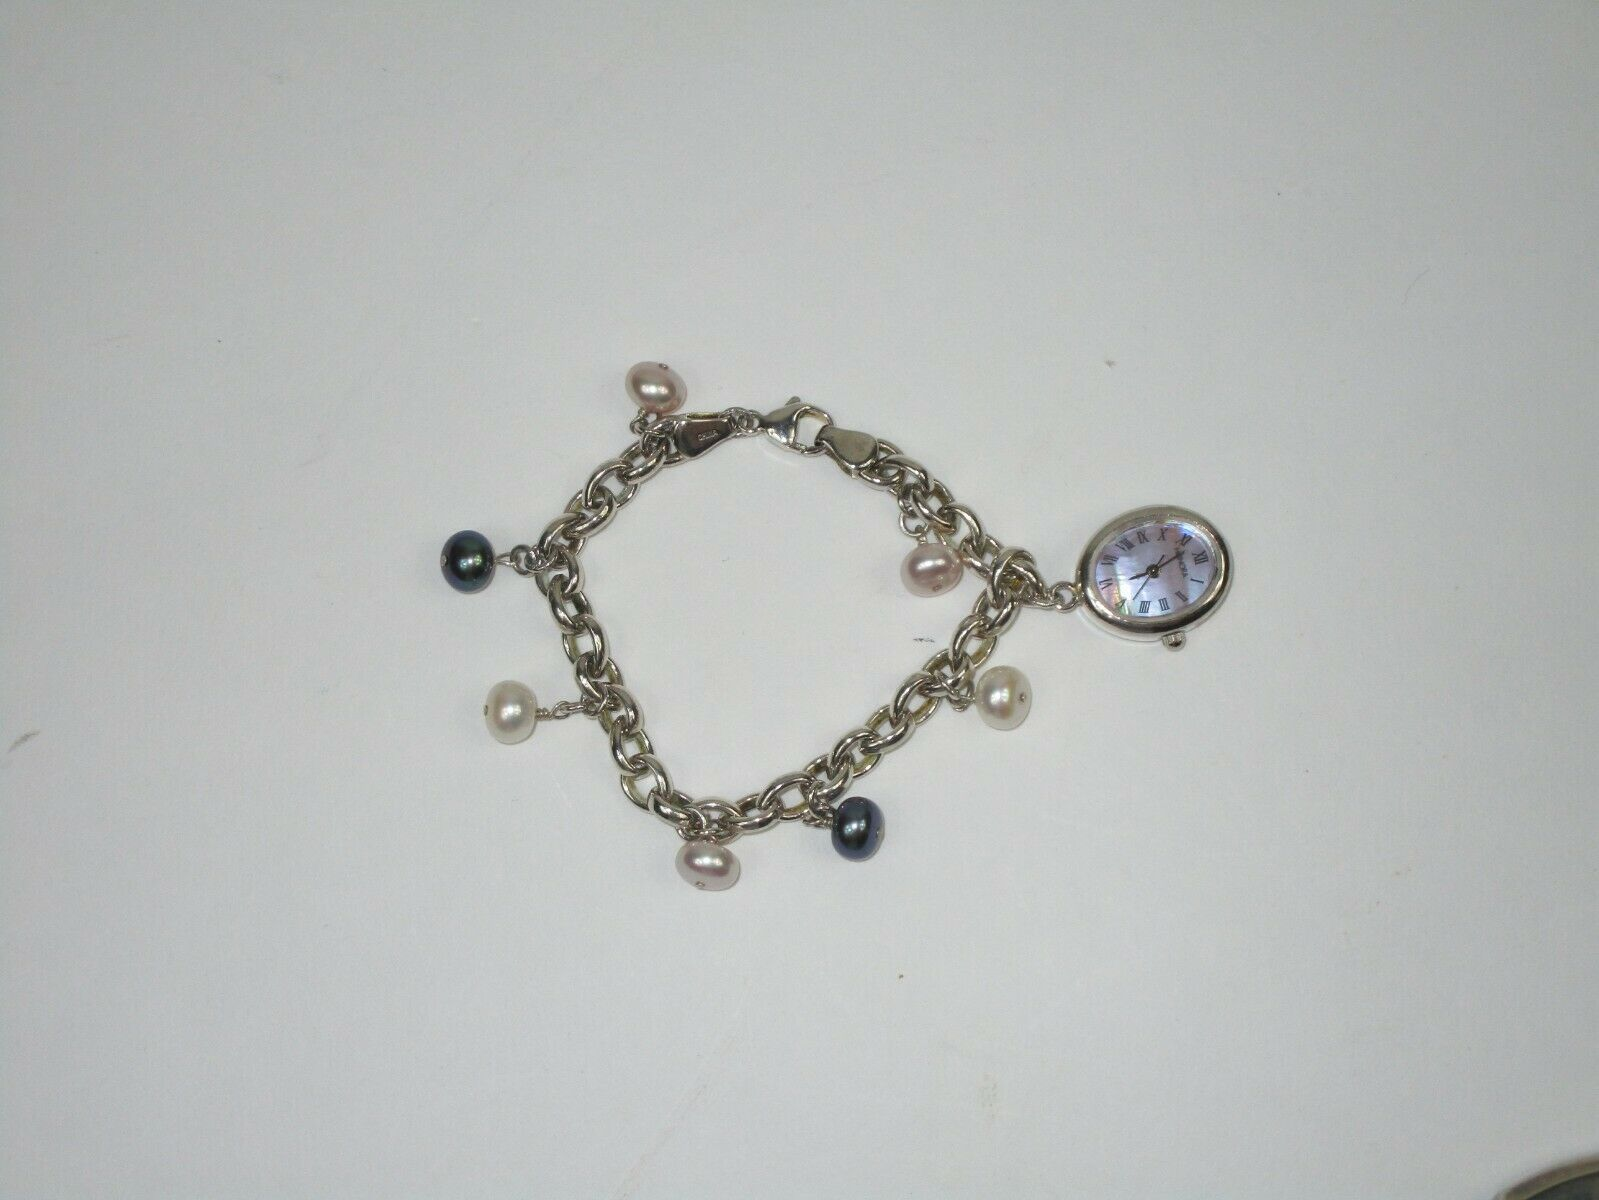 "HONORA STERLING SILVER Cable Chain Pearl Charm Mop Watch Women's BRACELET 7"" image 2"